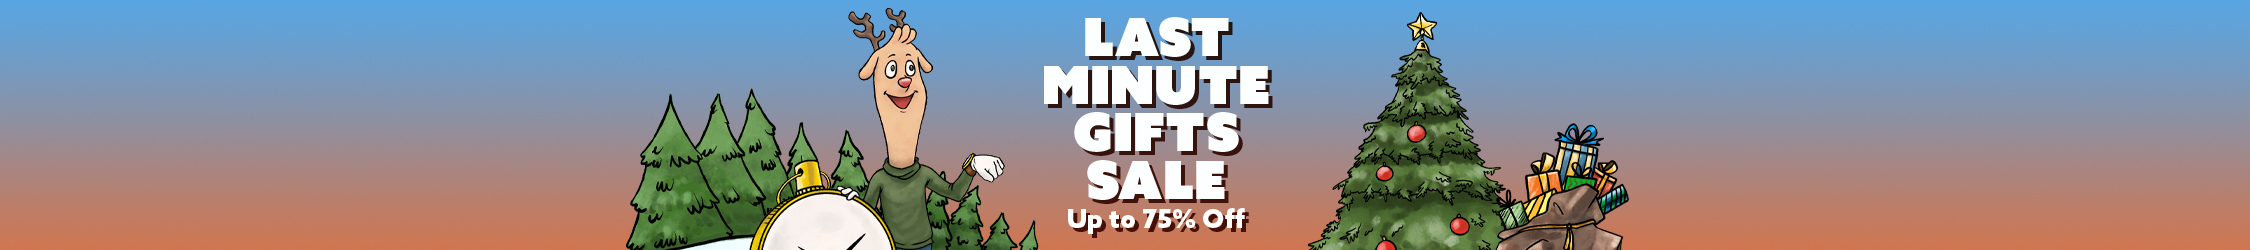 Last Minute Gifts Sale 2020